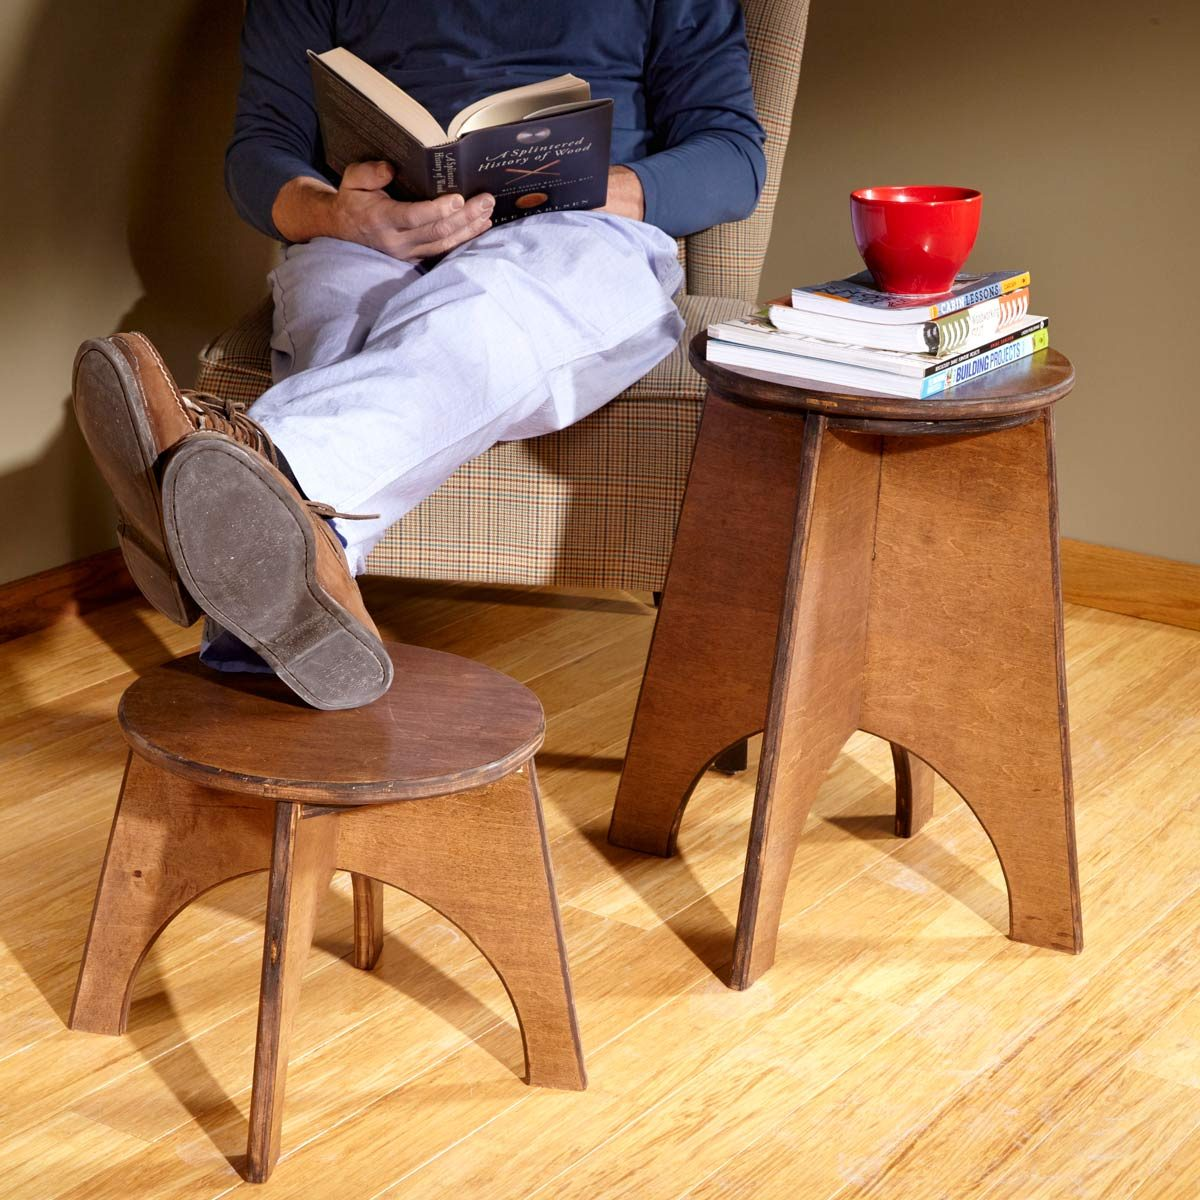 man reading and resting legs on handmade stool